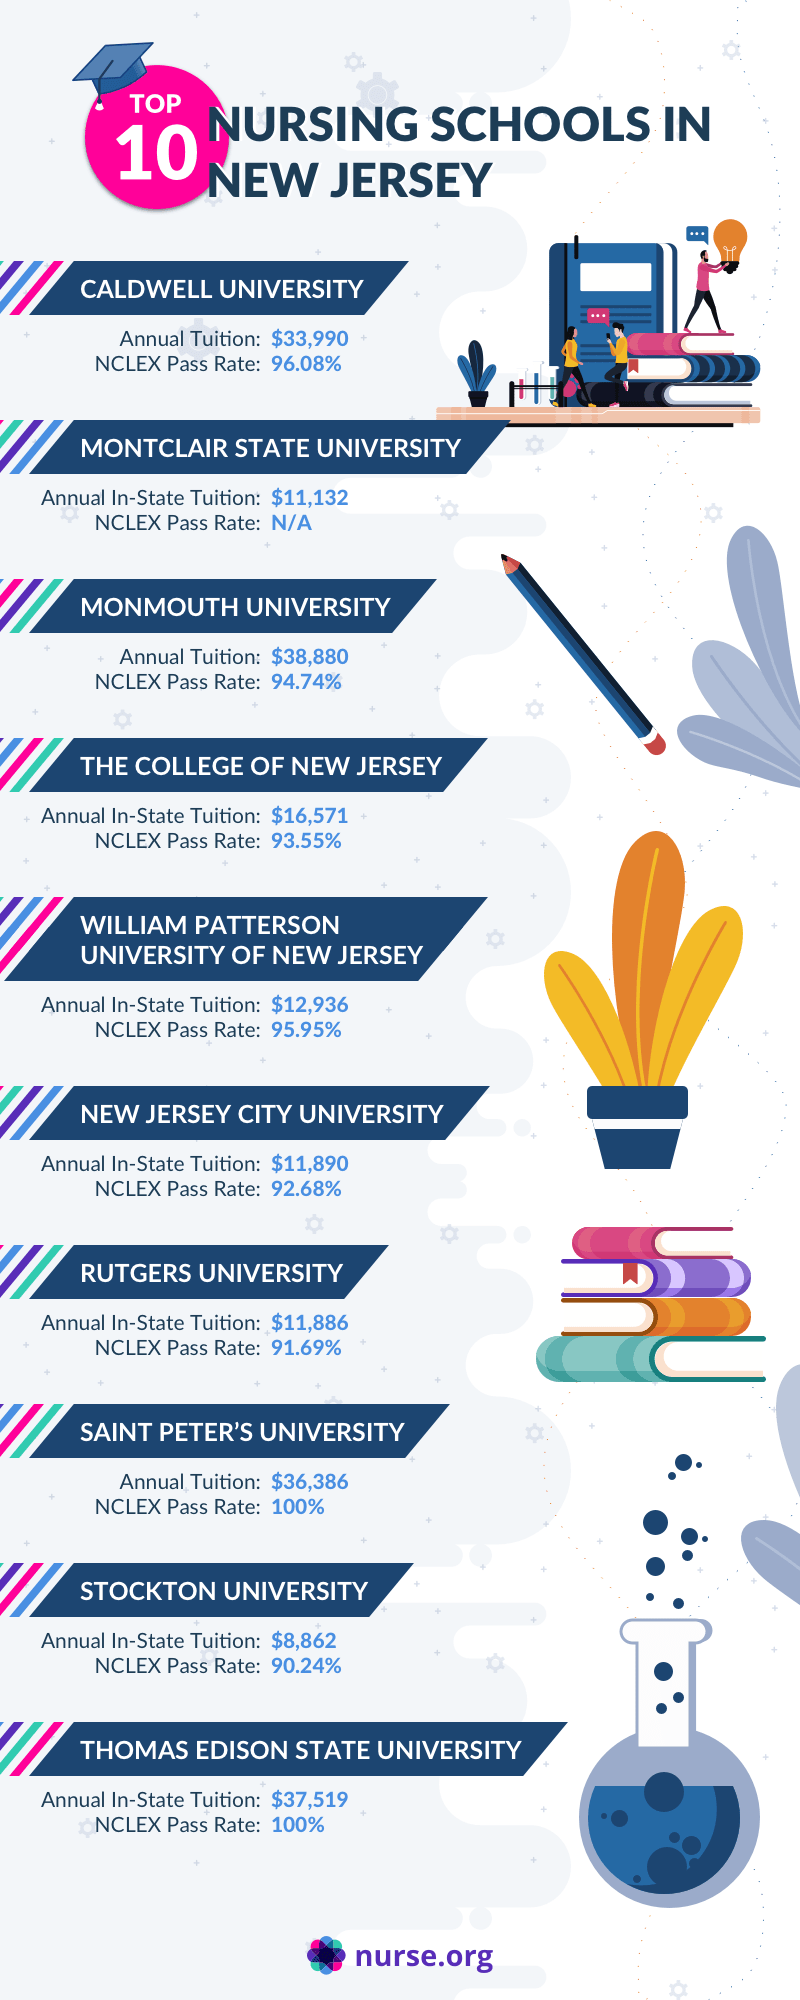 Infographic comparing the top nursing schools in New Jersey